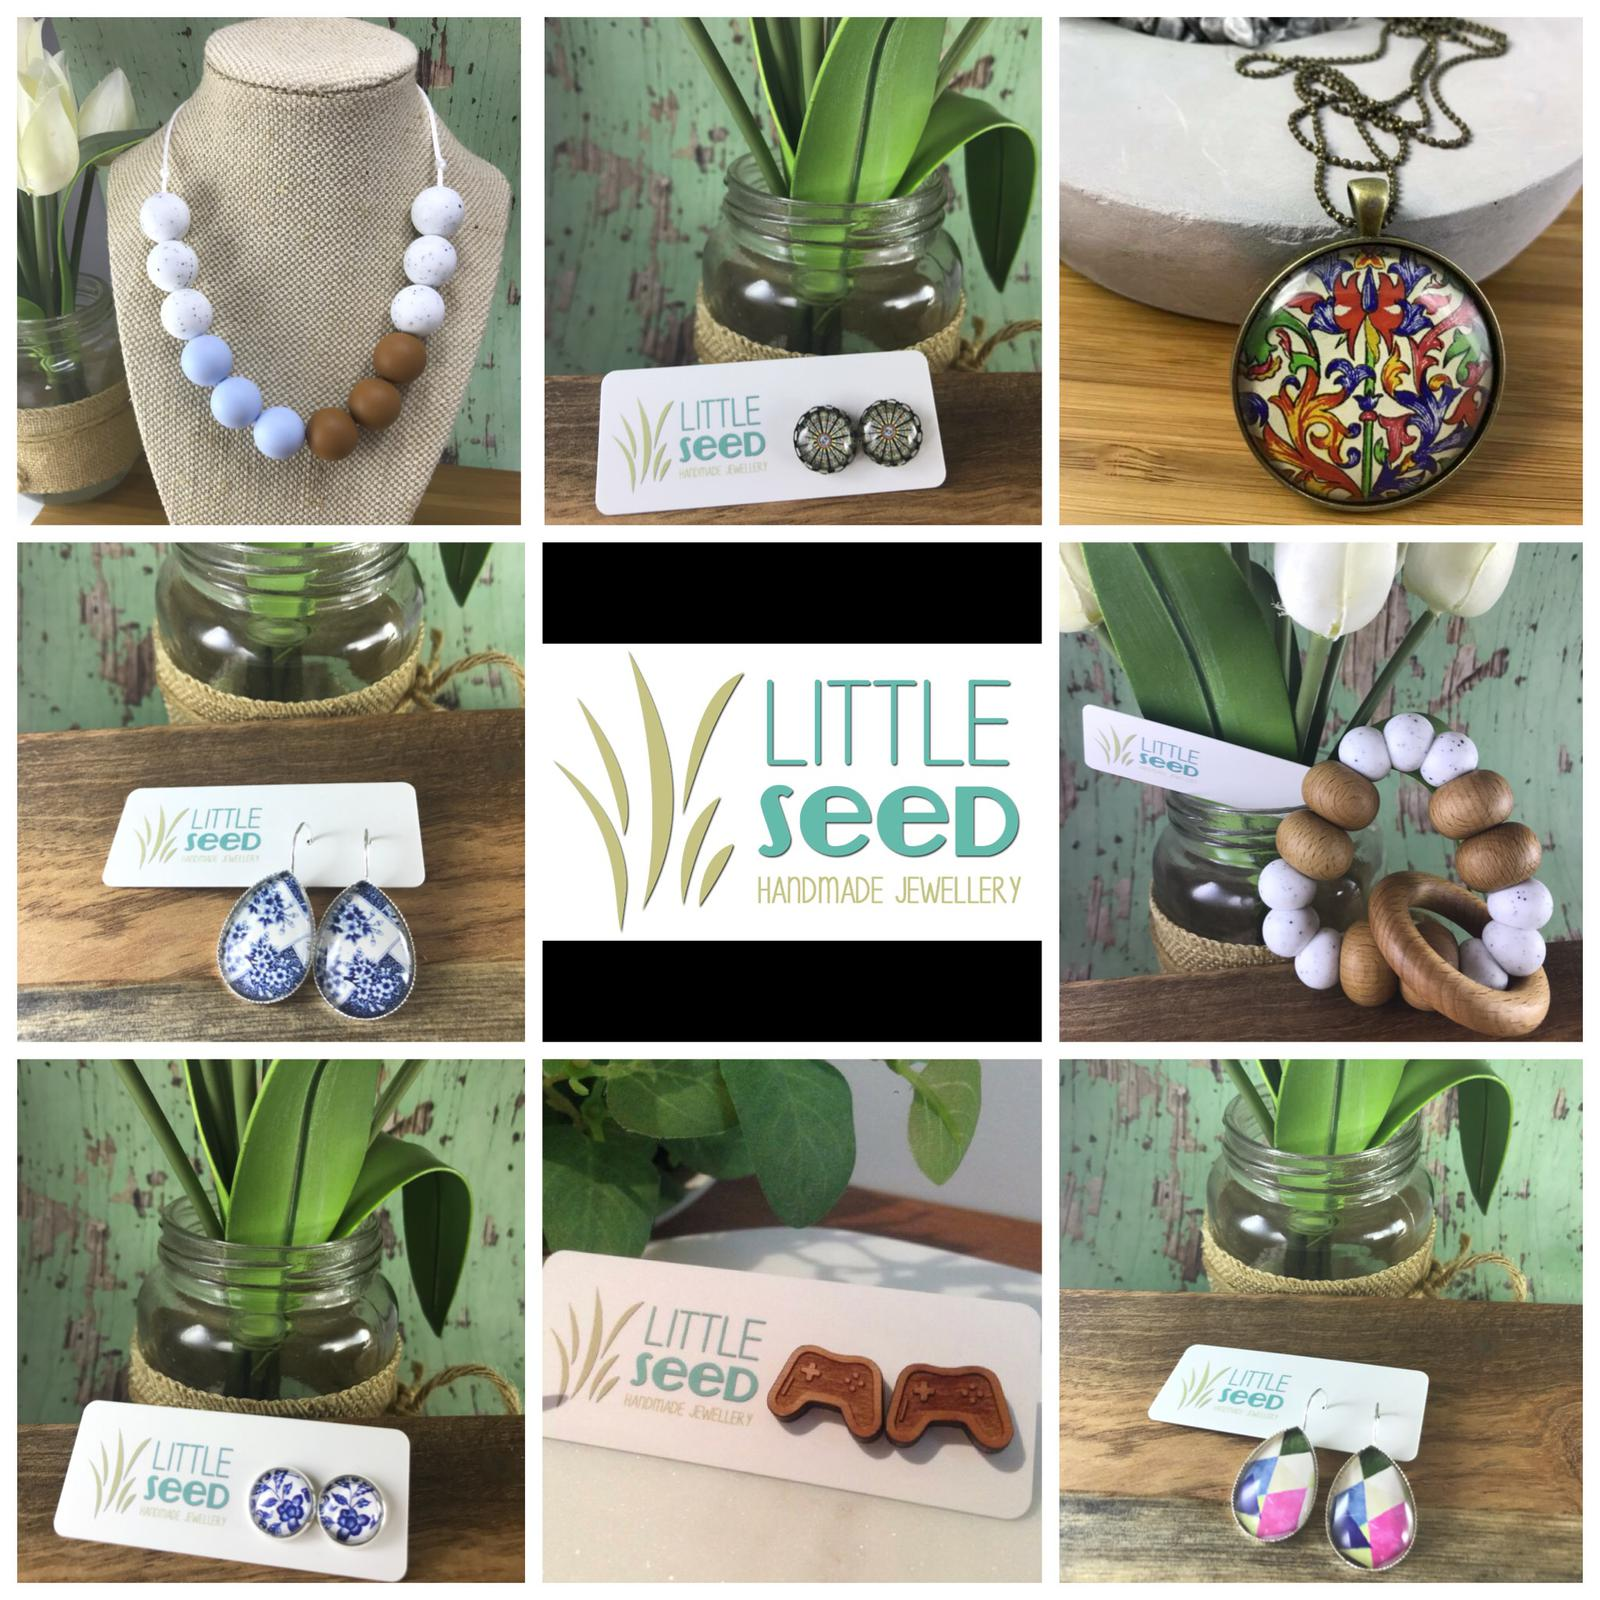 A range of Little Seed items